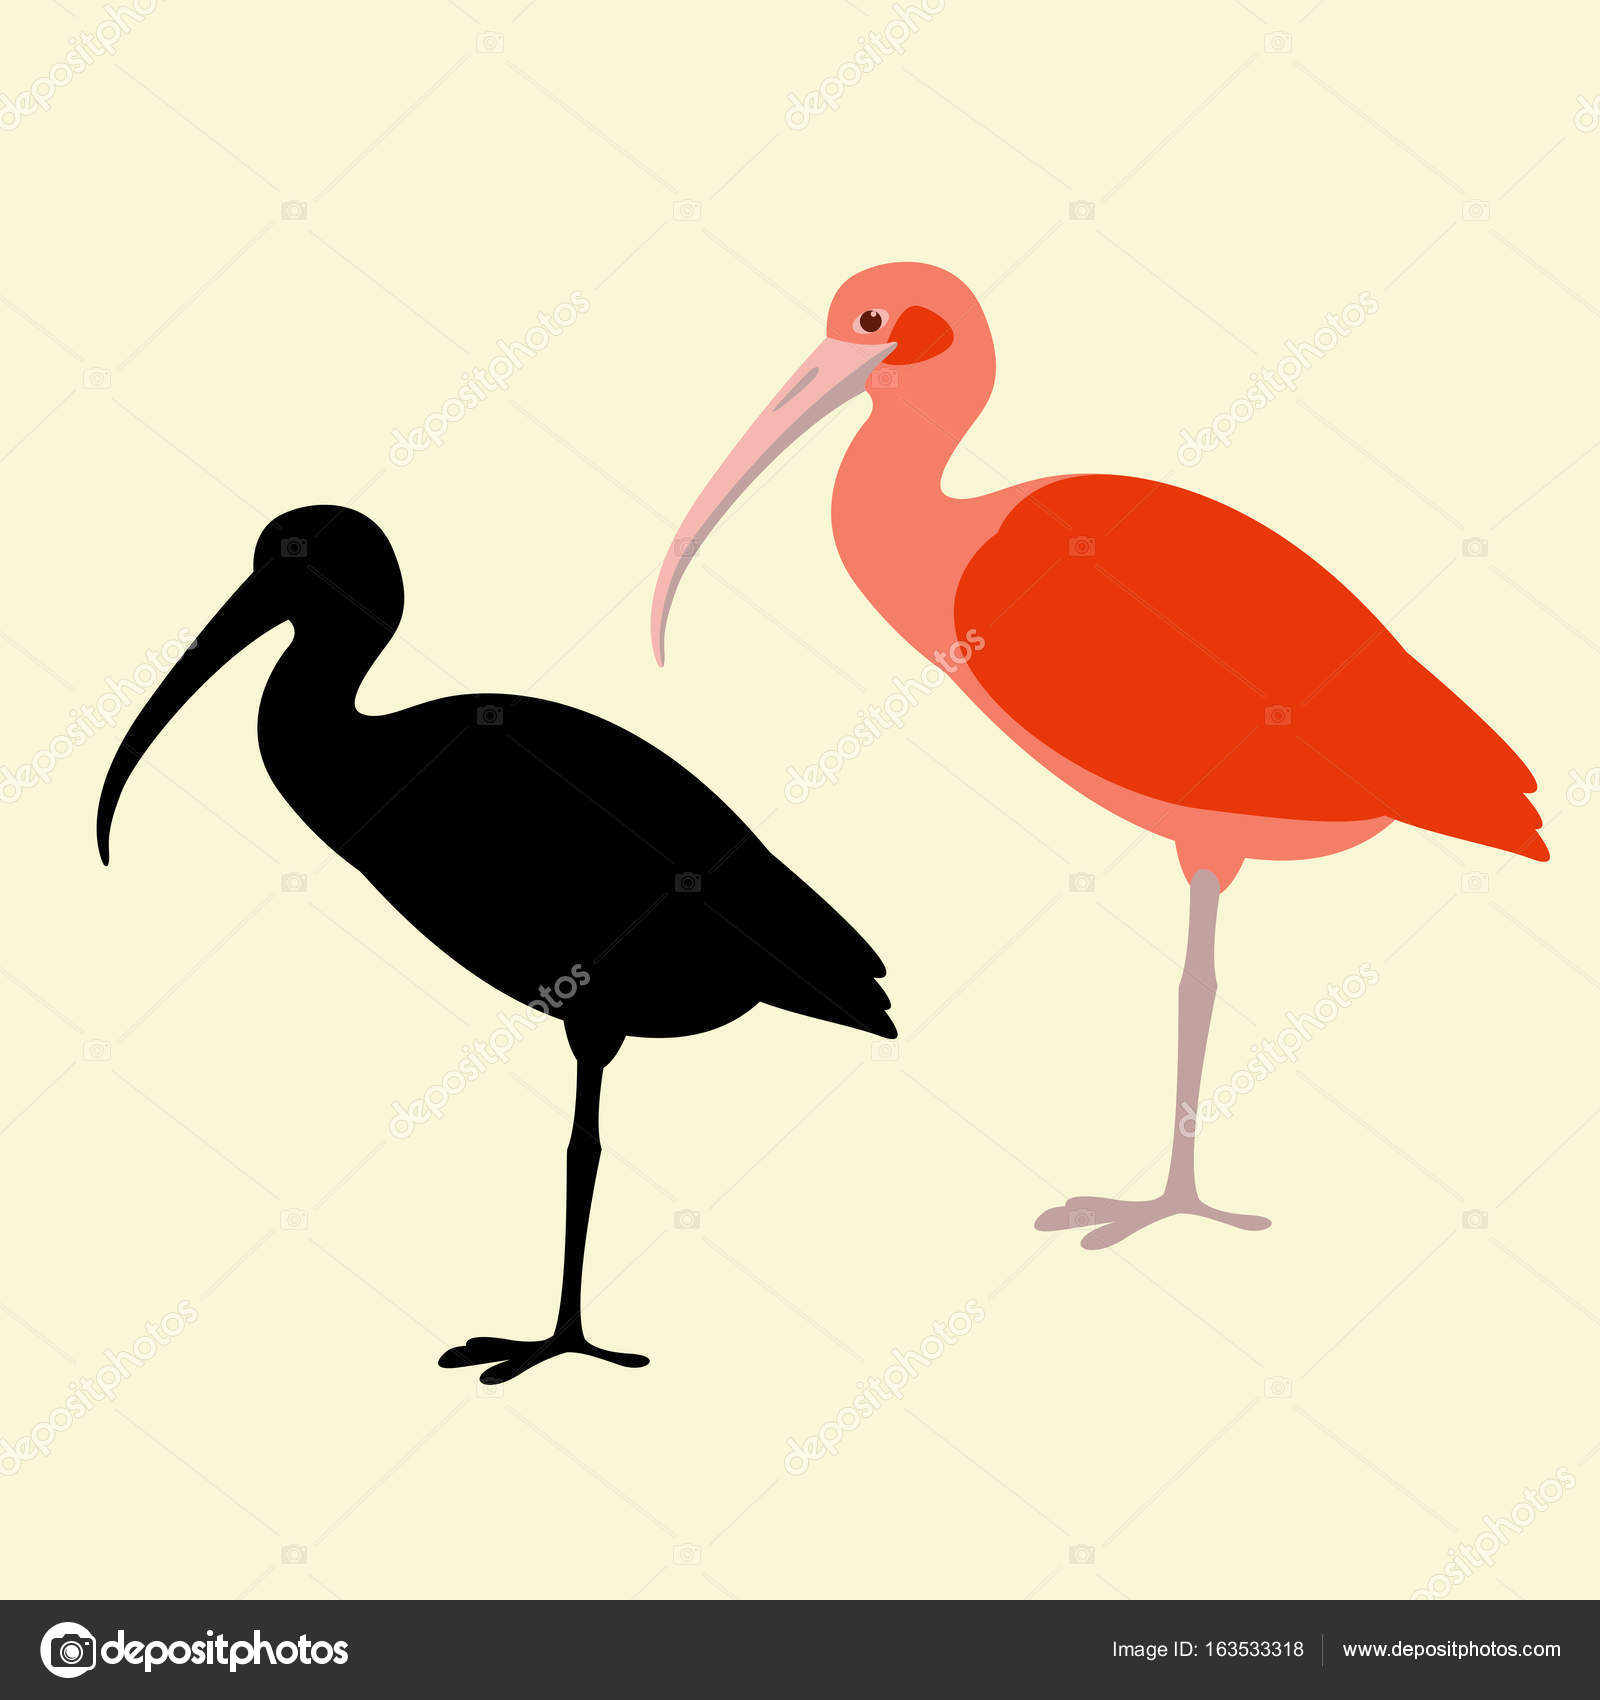 Ibis bird stock vectors royalty free ibis bird illustrations ibis bird vector illustration flat style black silhouette royalty free stock illustrations buycottarizona Choice Image